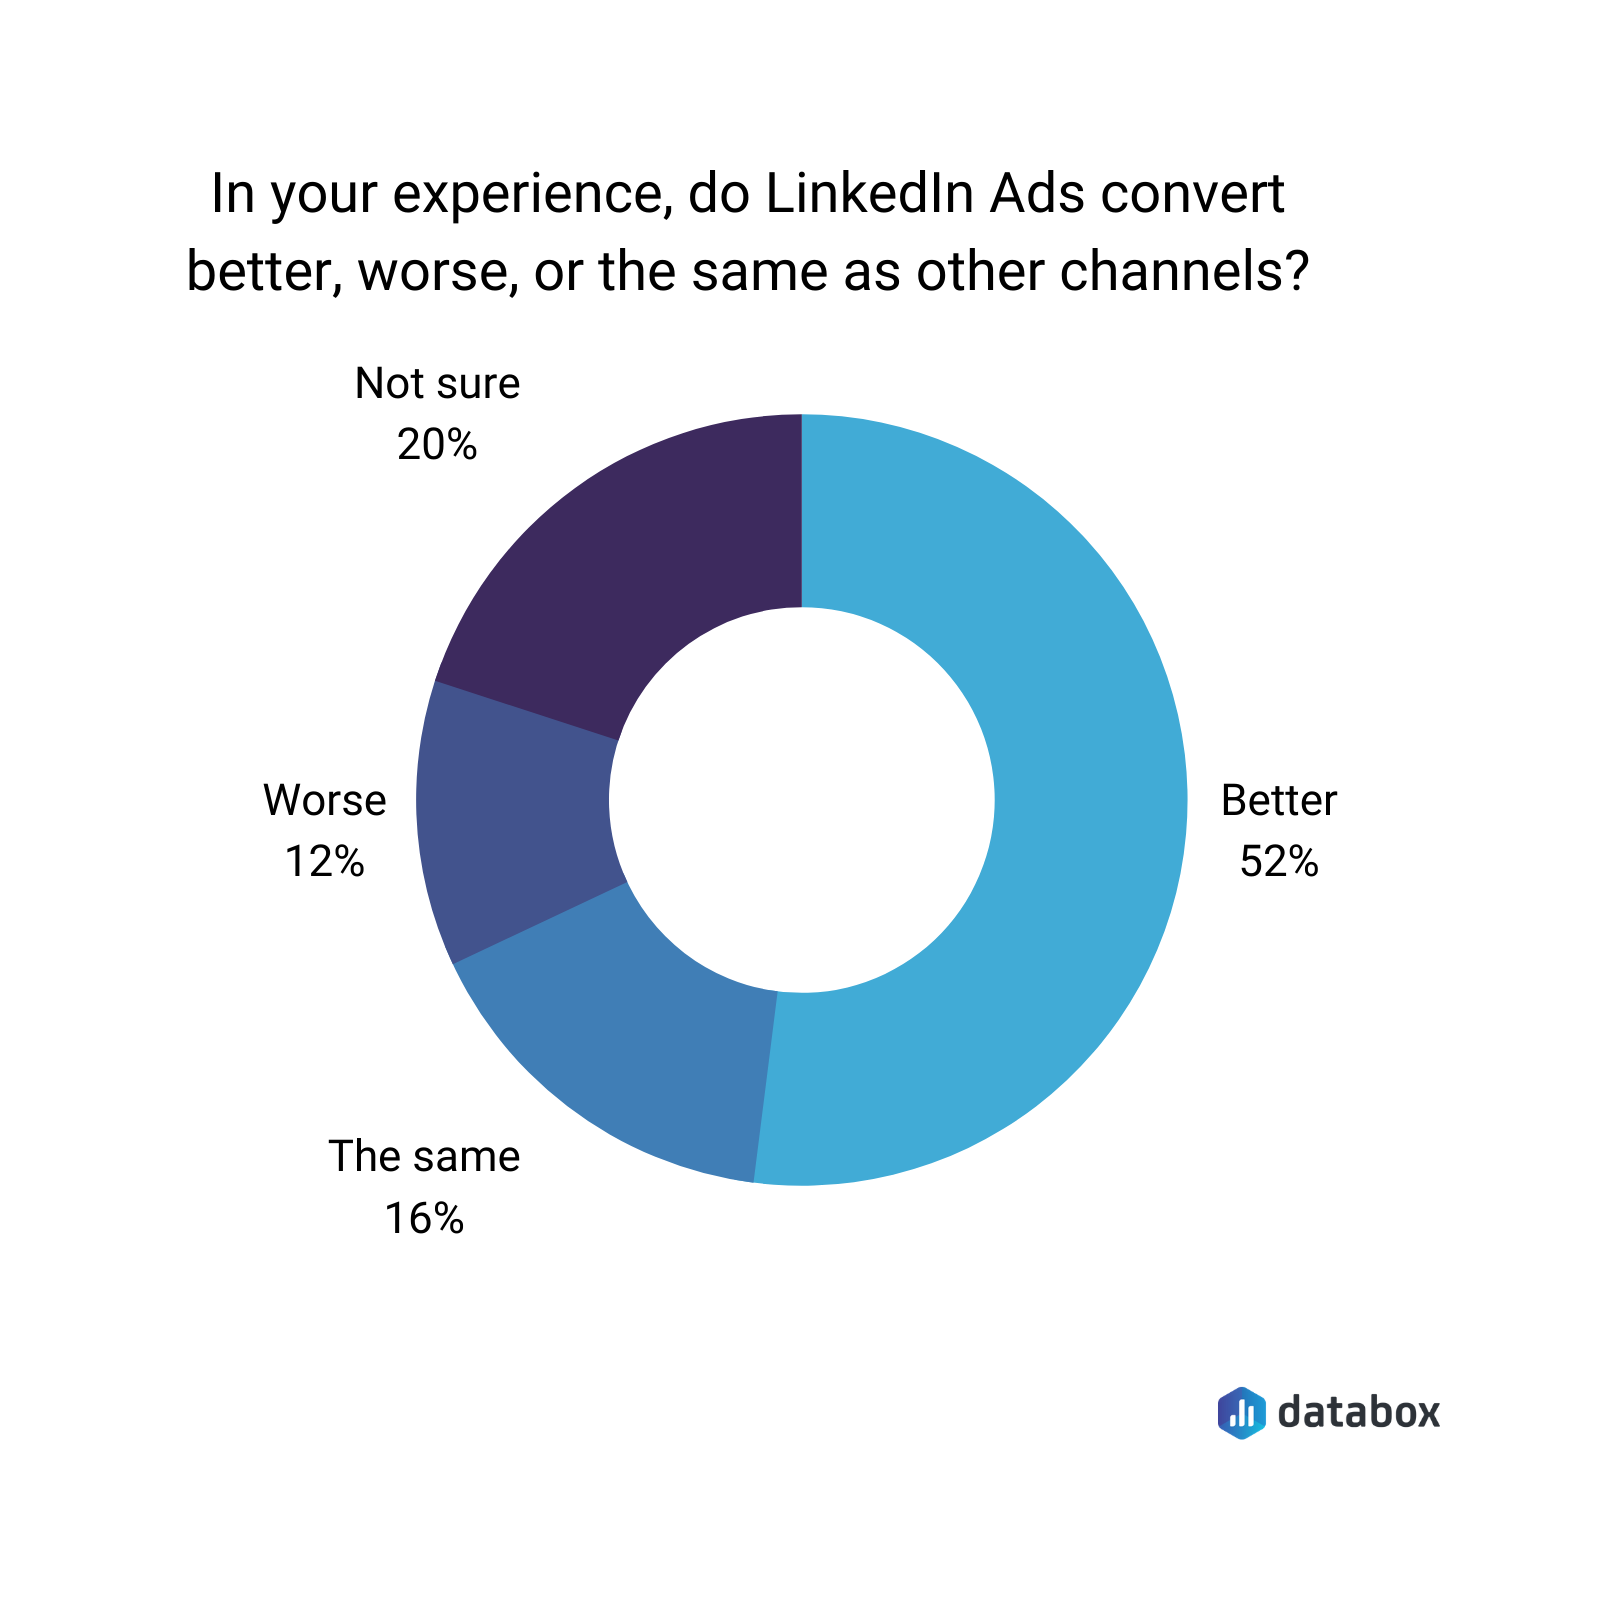 In your experience, do Linkedin ads convert better, worse, or the same as other channels?